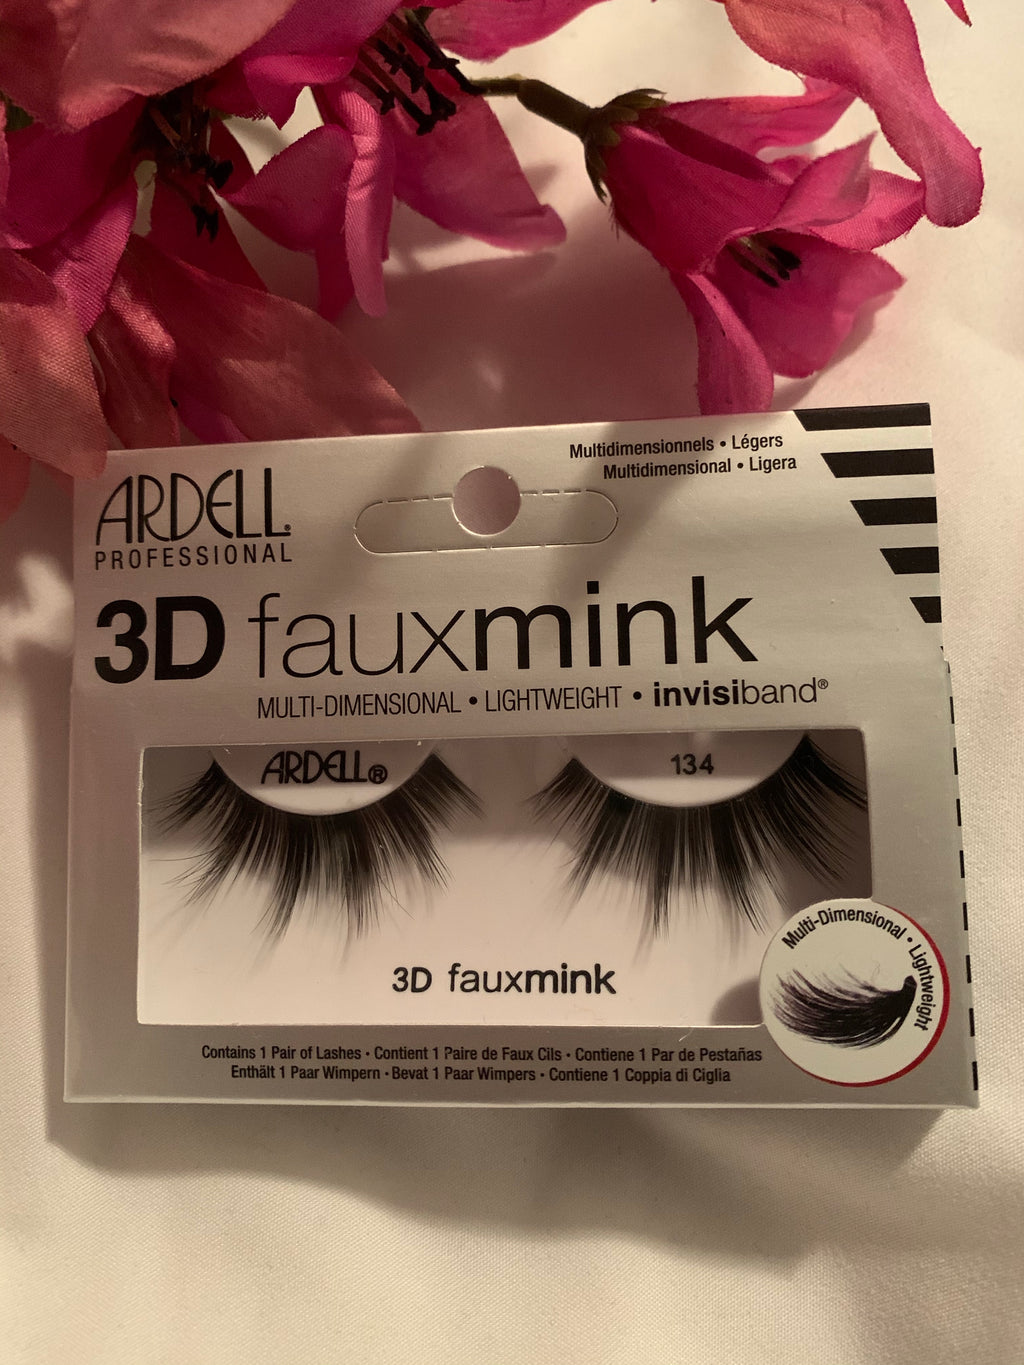 ARDELL 3D FAUX MINK LASHES #134